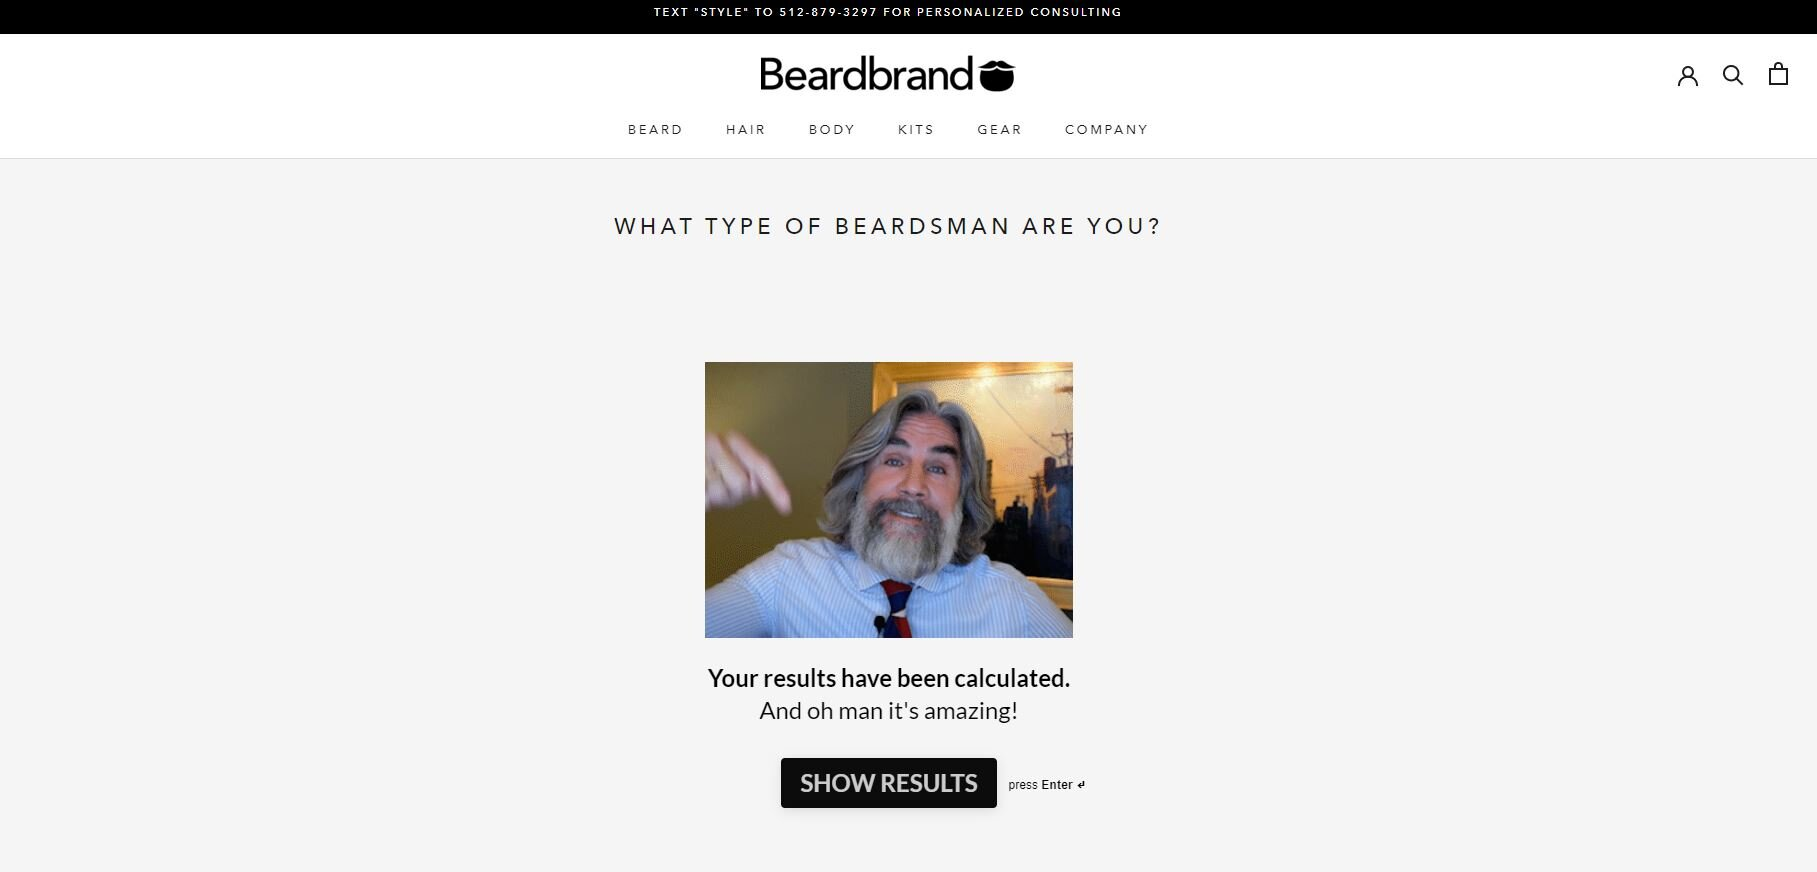 Beardbrand-Quiz-13.JPG